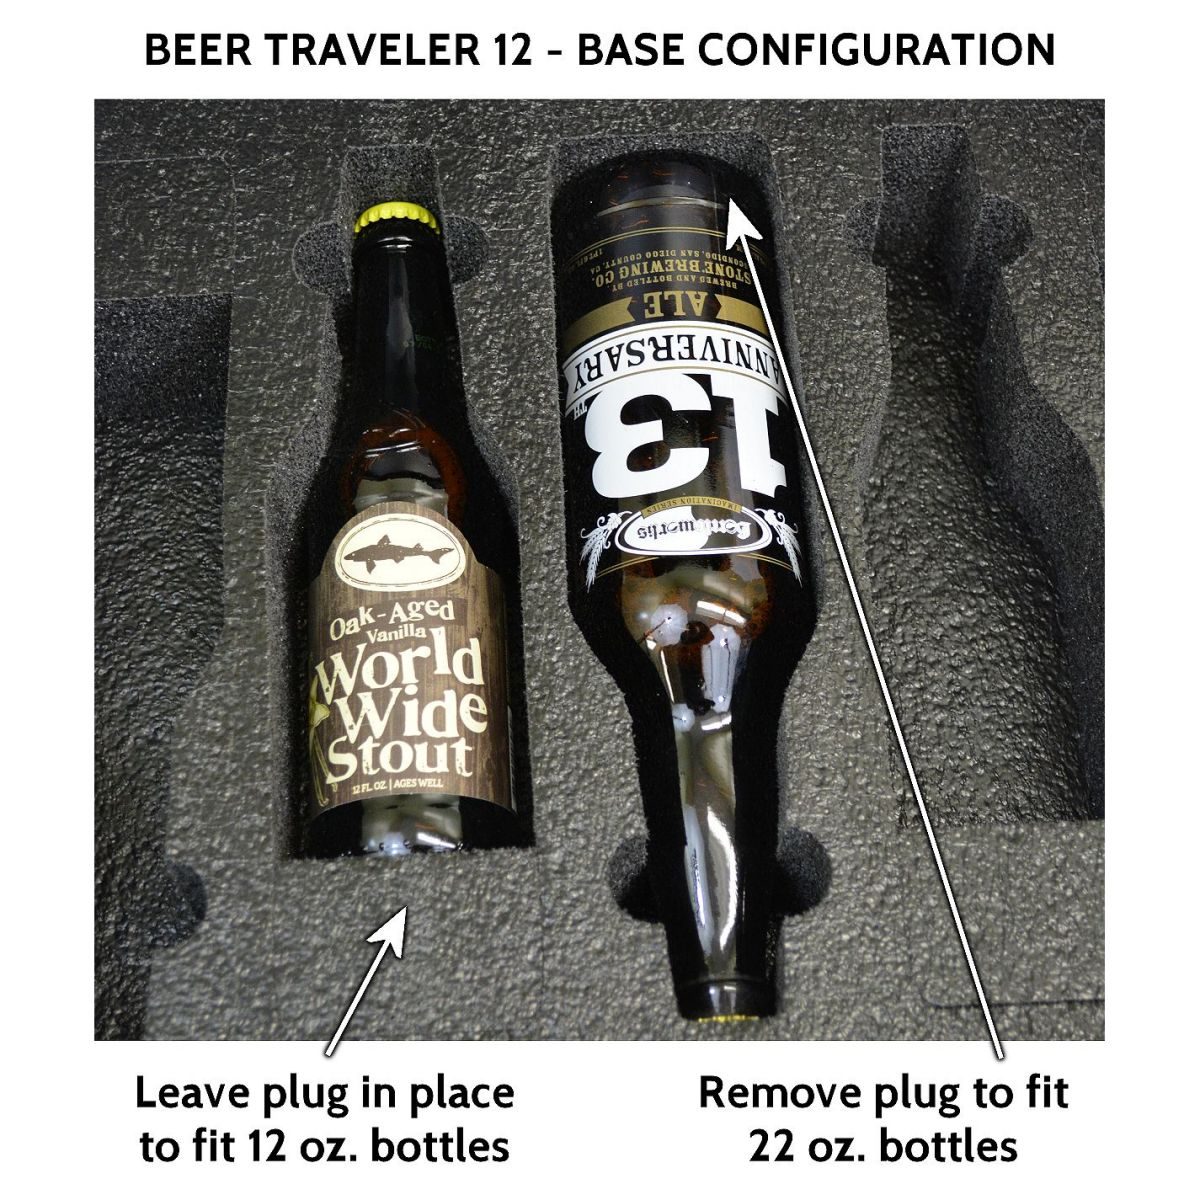 Seahorse SE-920 BC Beer Traveler 12 Custom Foam Case - Base Configuration